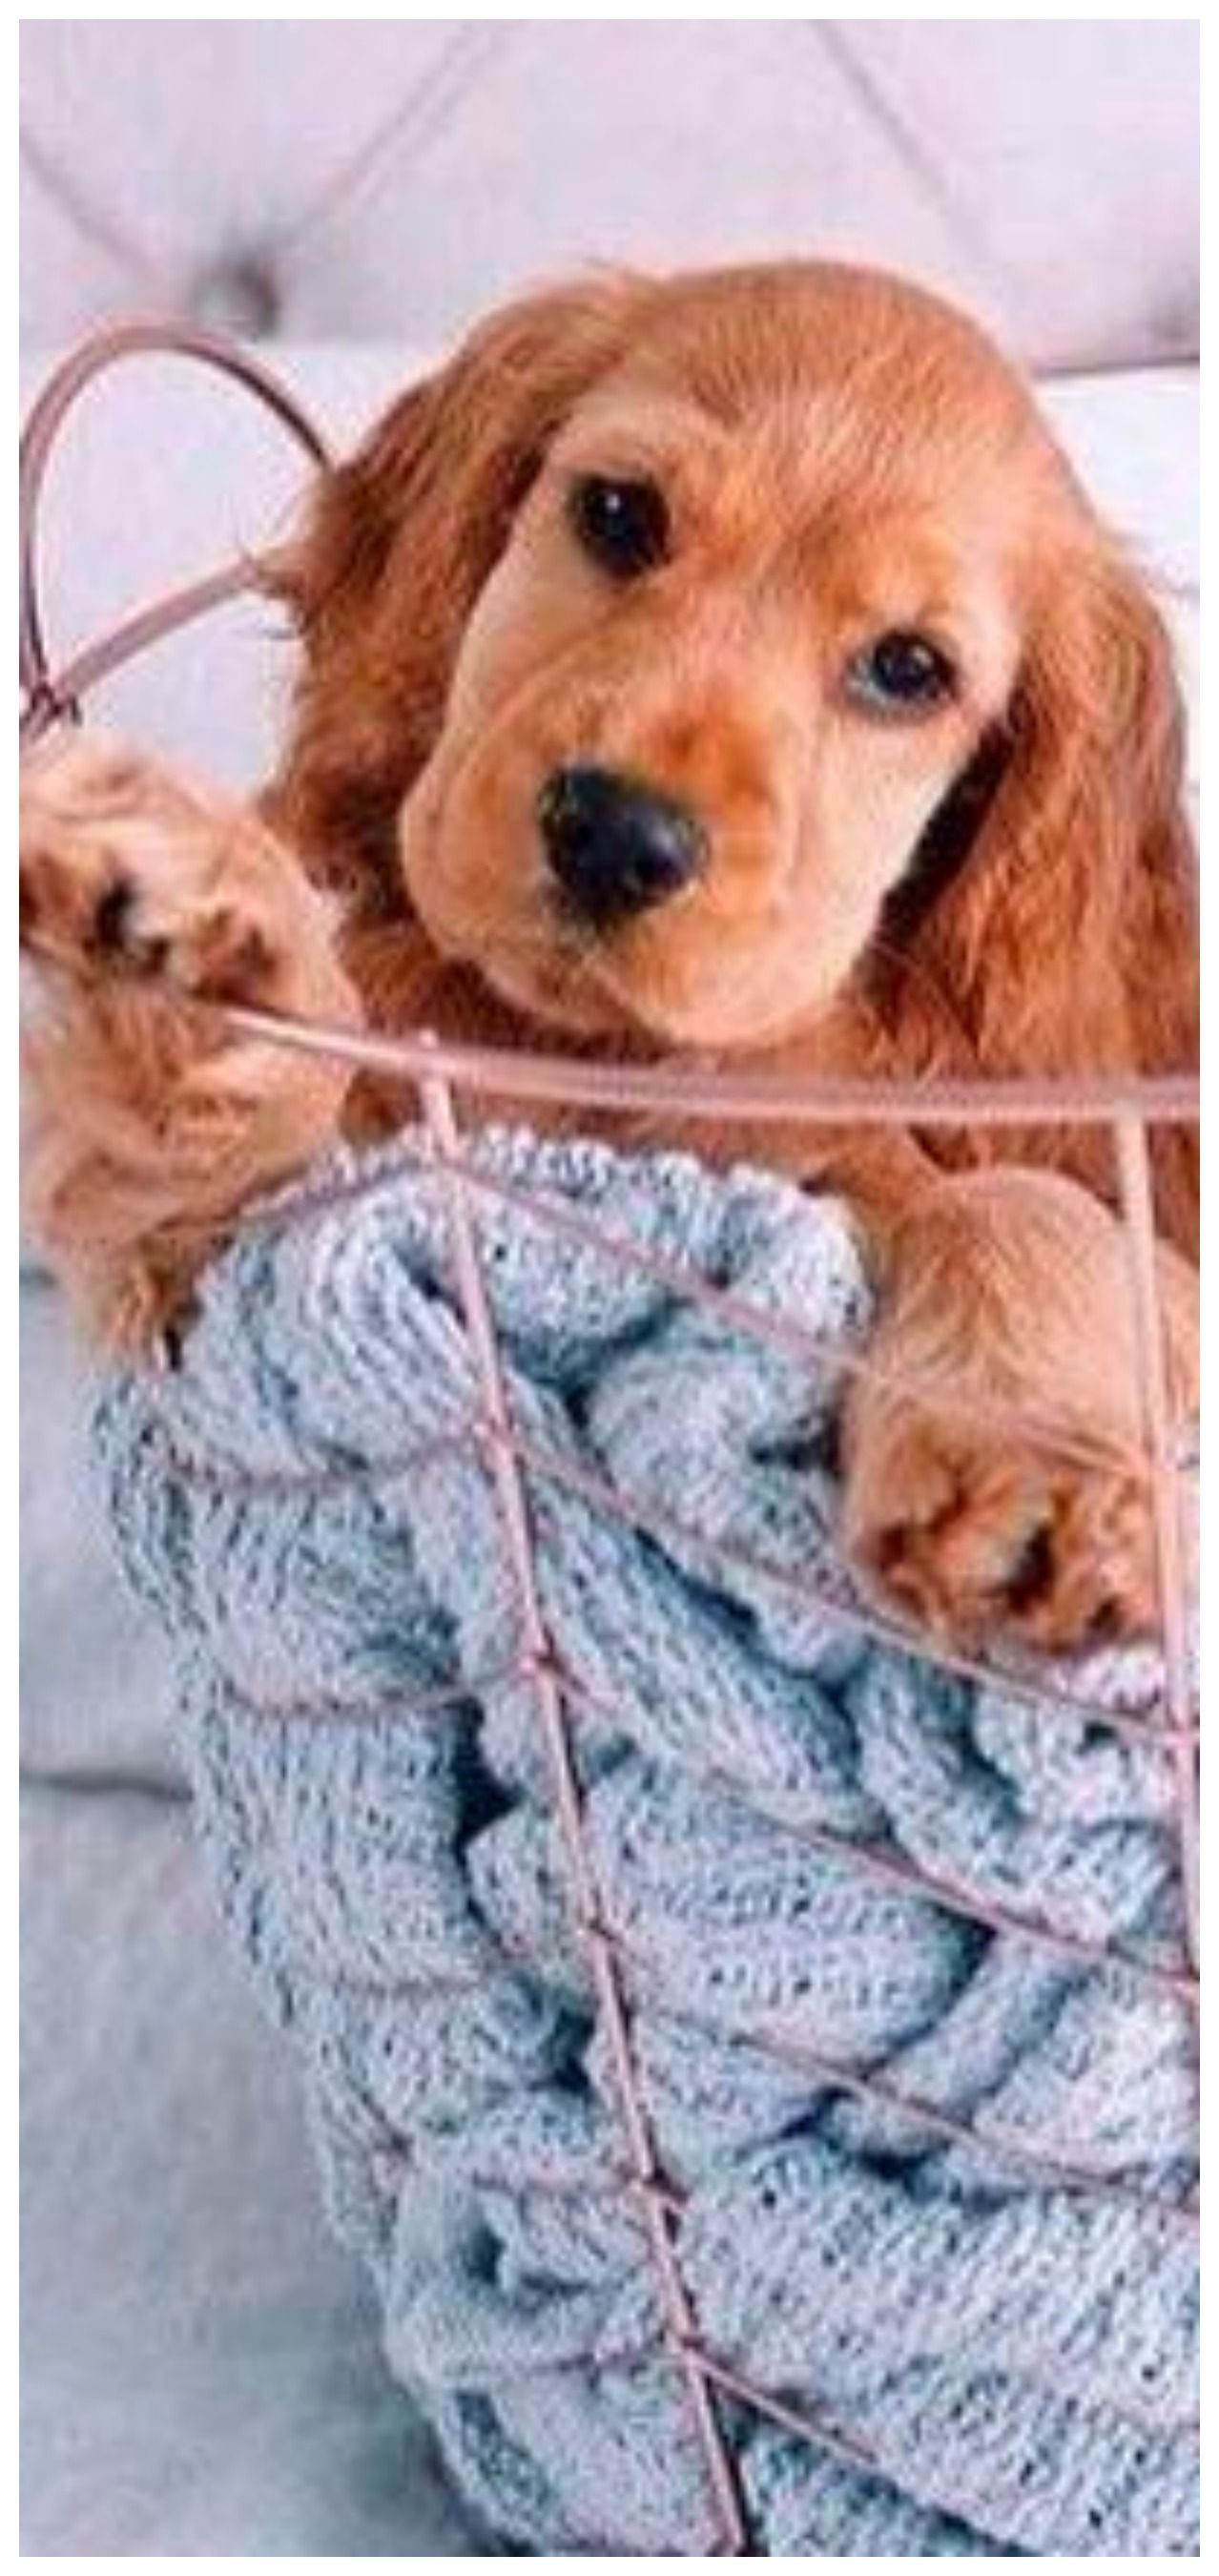 Pin By Tam S Boards On The Pet Store Puppy Pictures Dog Life Pet Dogs